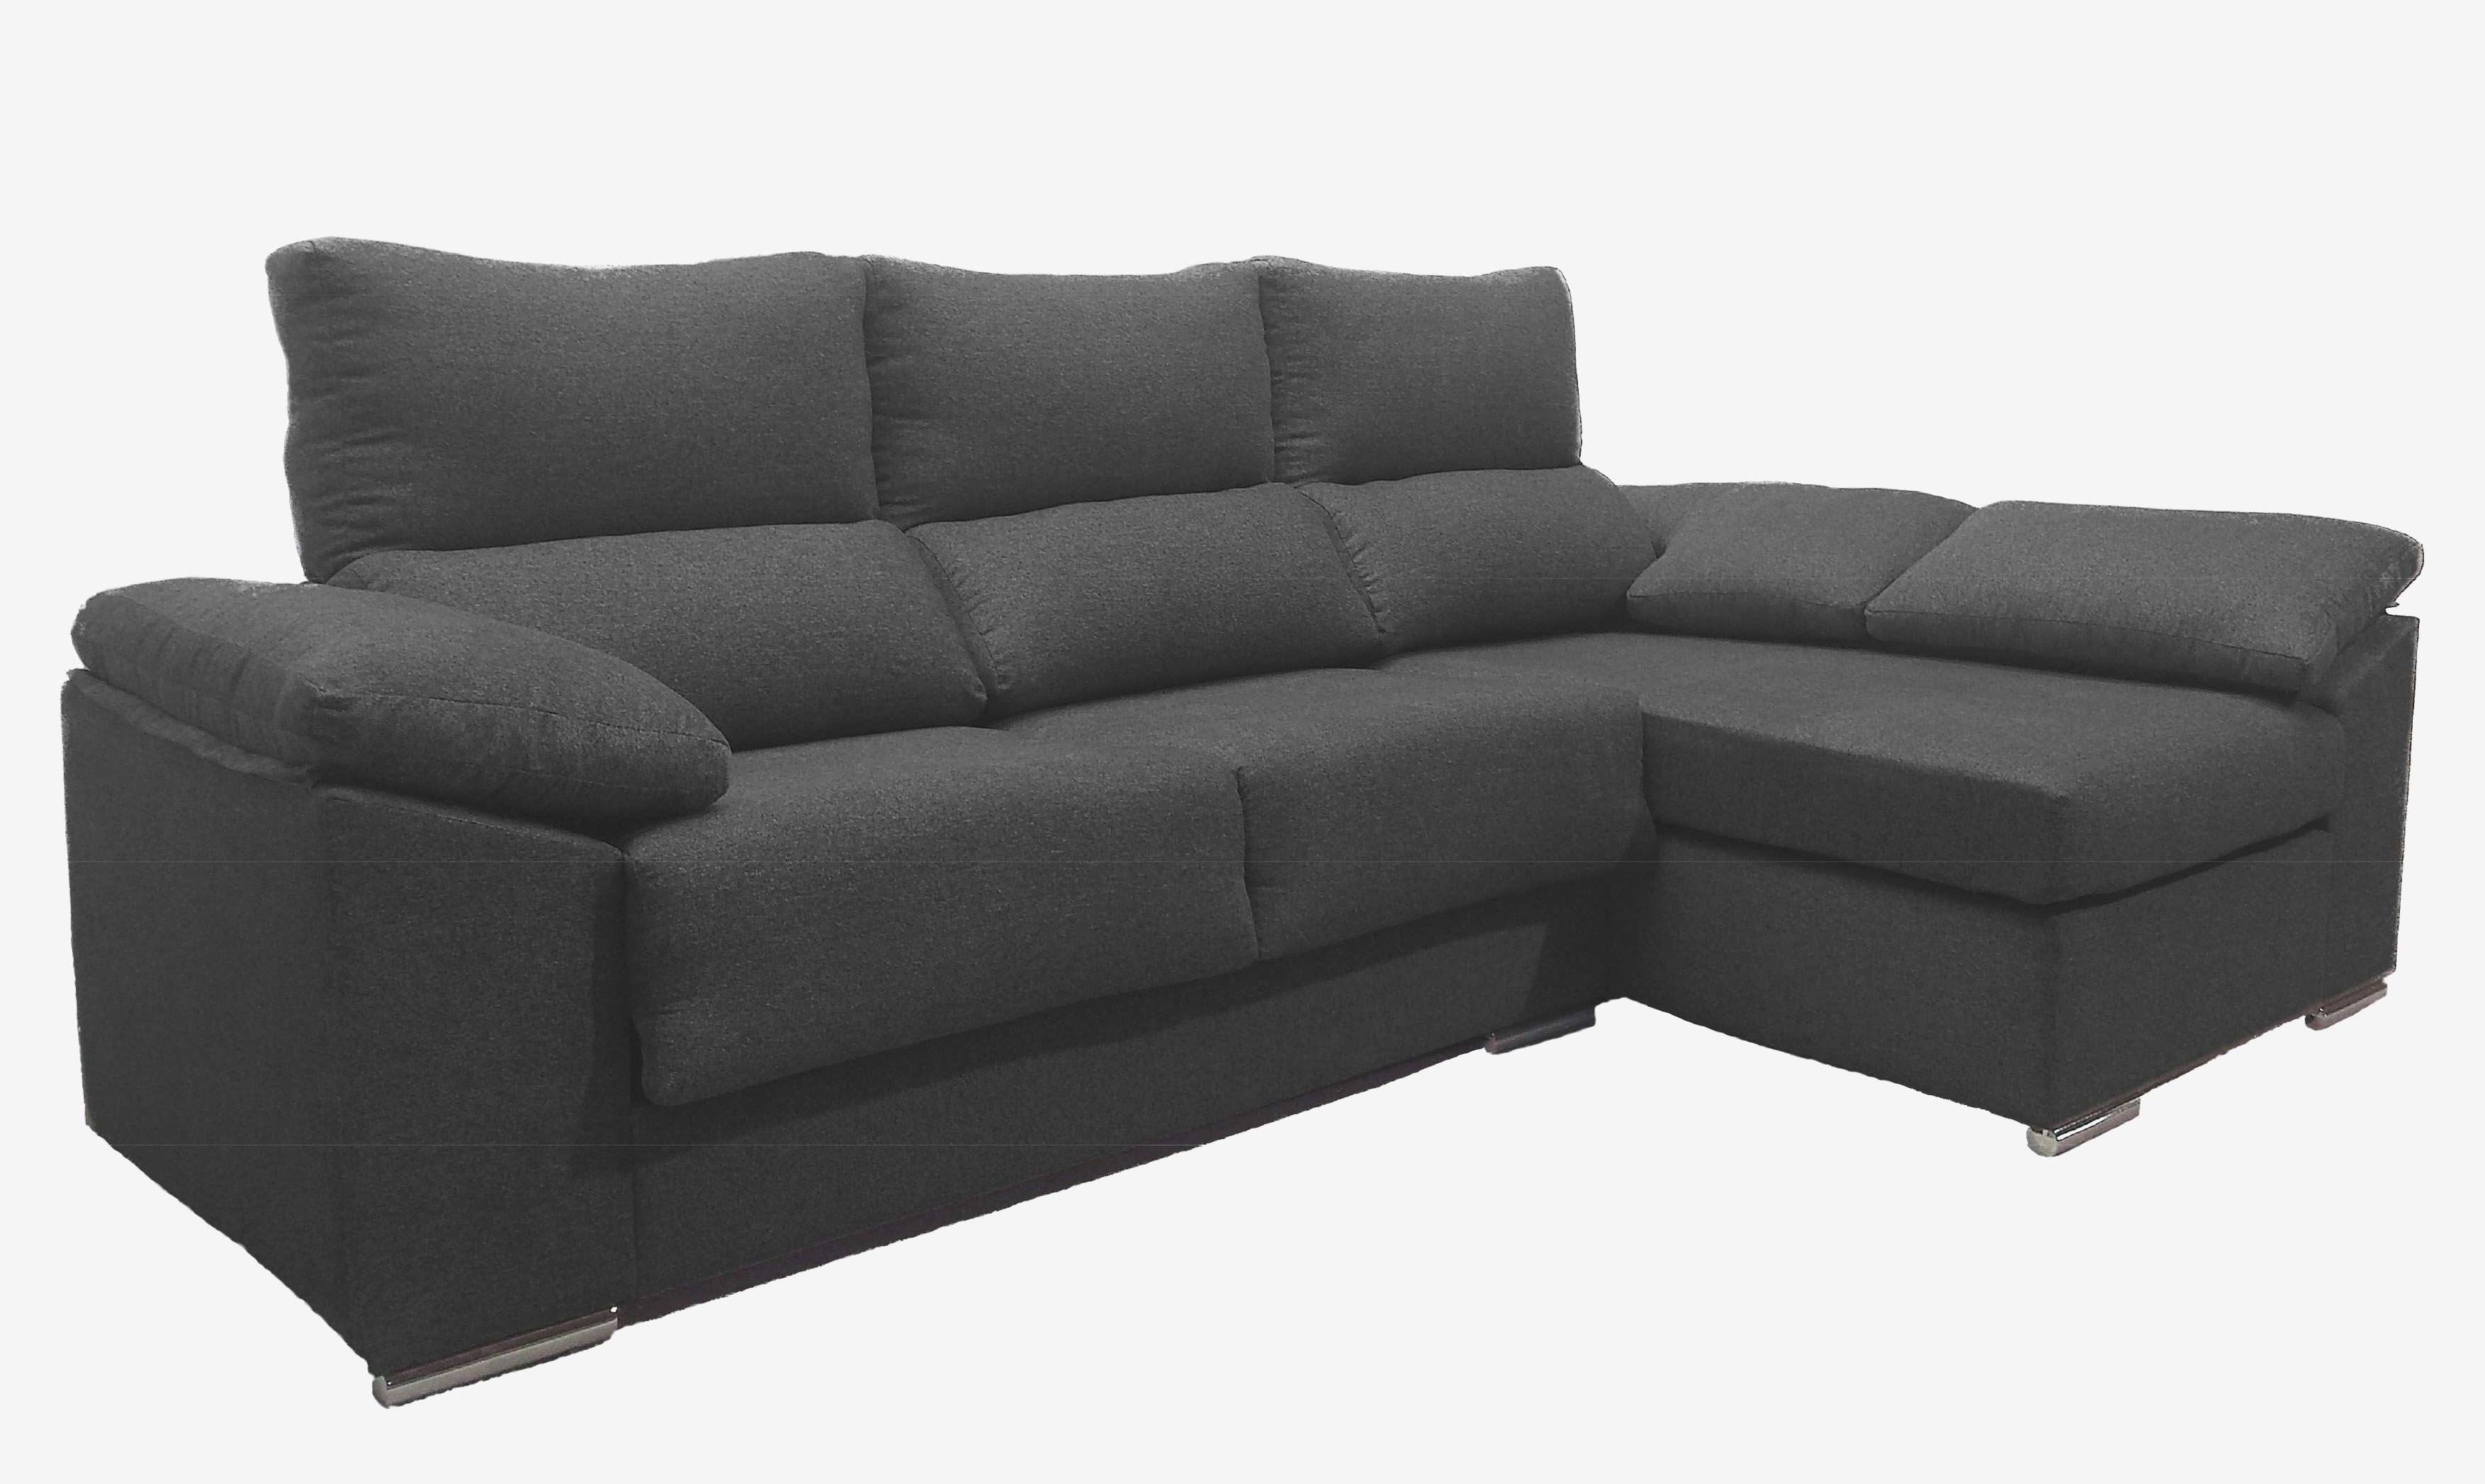 lujo sofas chaise longue baratos sofa the honoroak 2